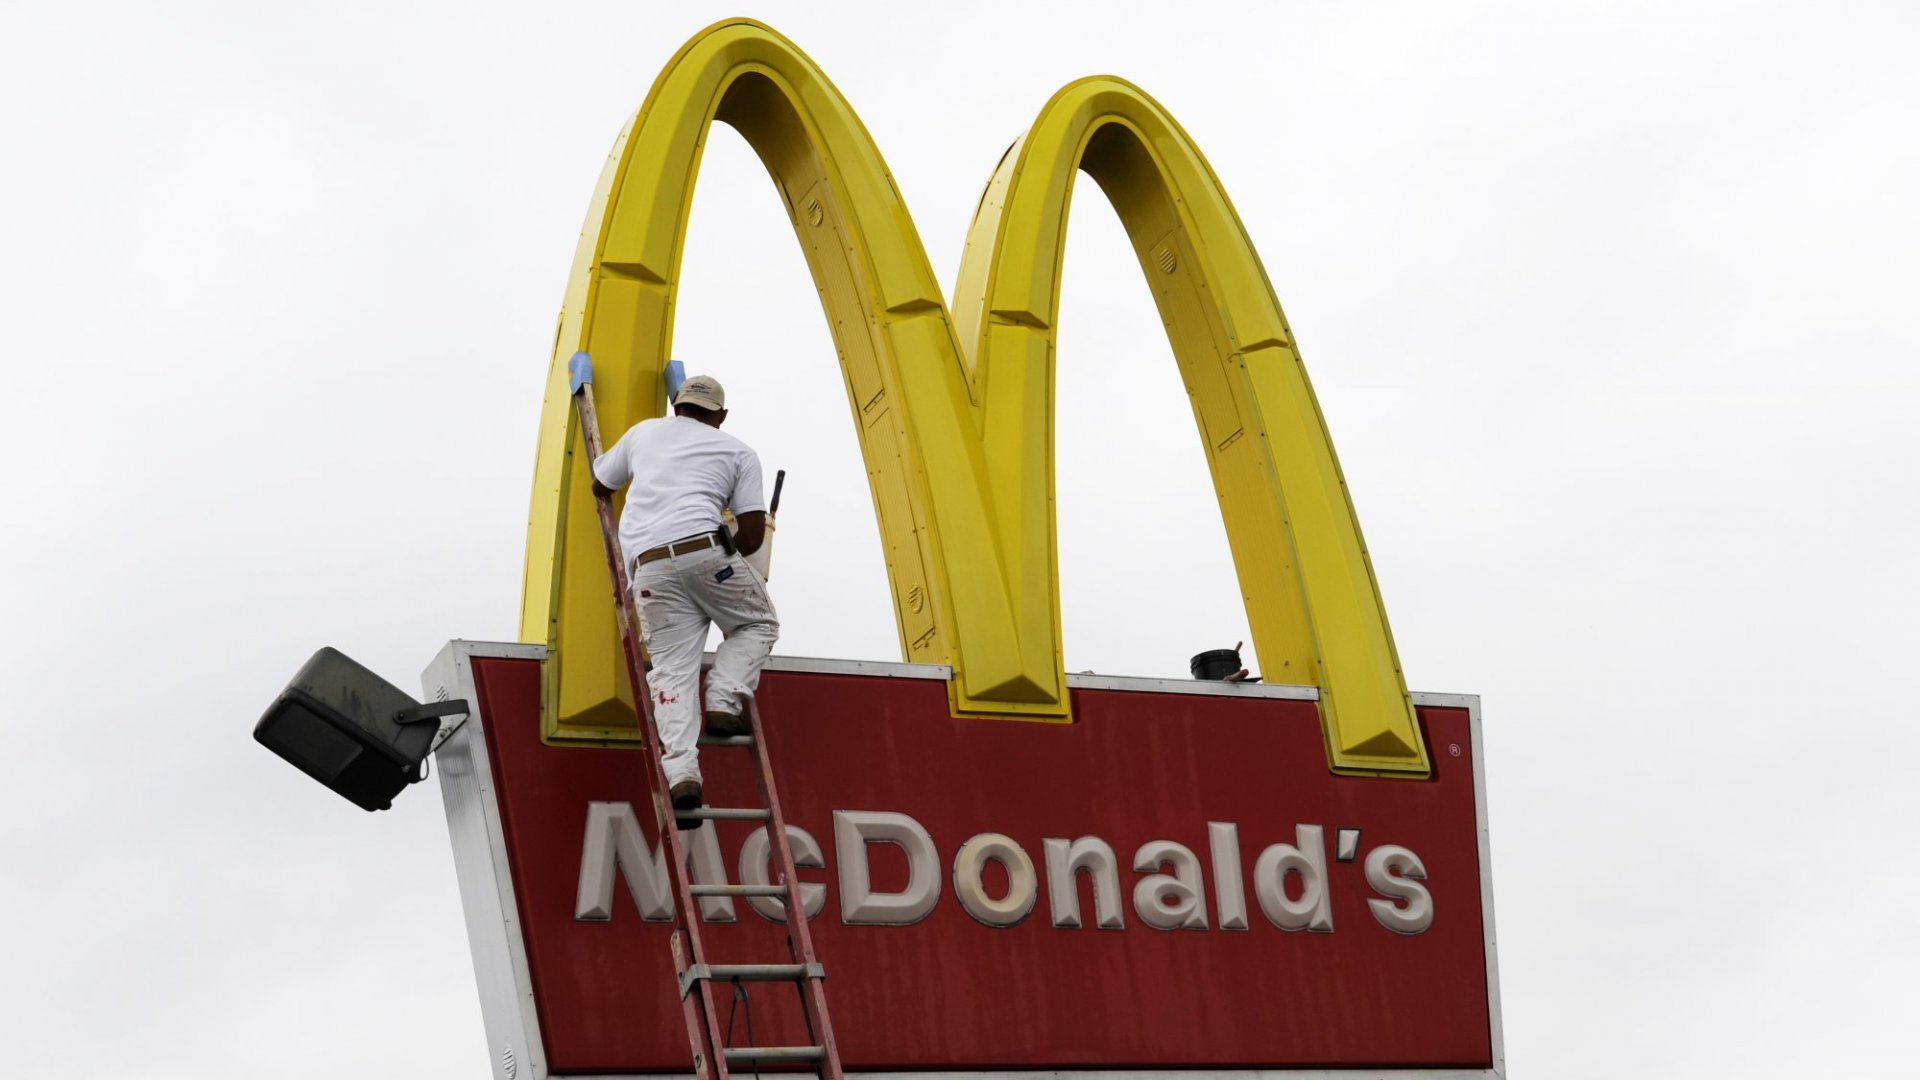 After Amazon Revealed It Would Raise Its Minimum Wage to $15 an Hour, Bernie Sanders Now Has McDonald's in His Sights